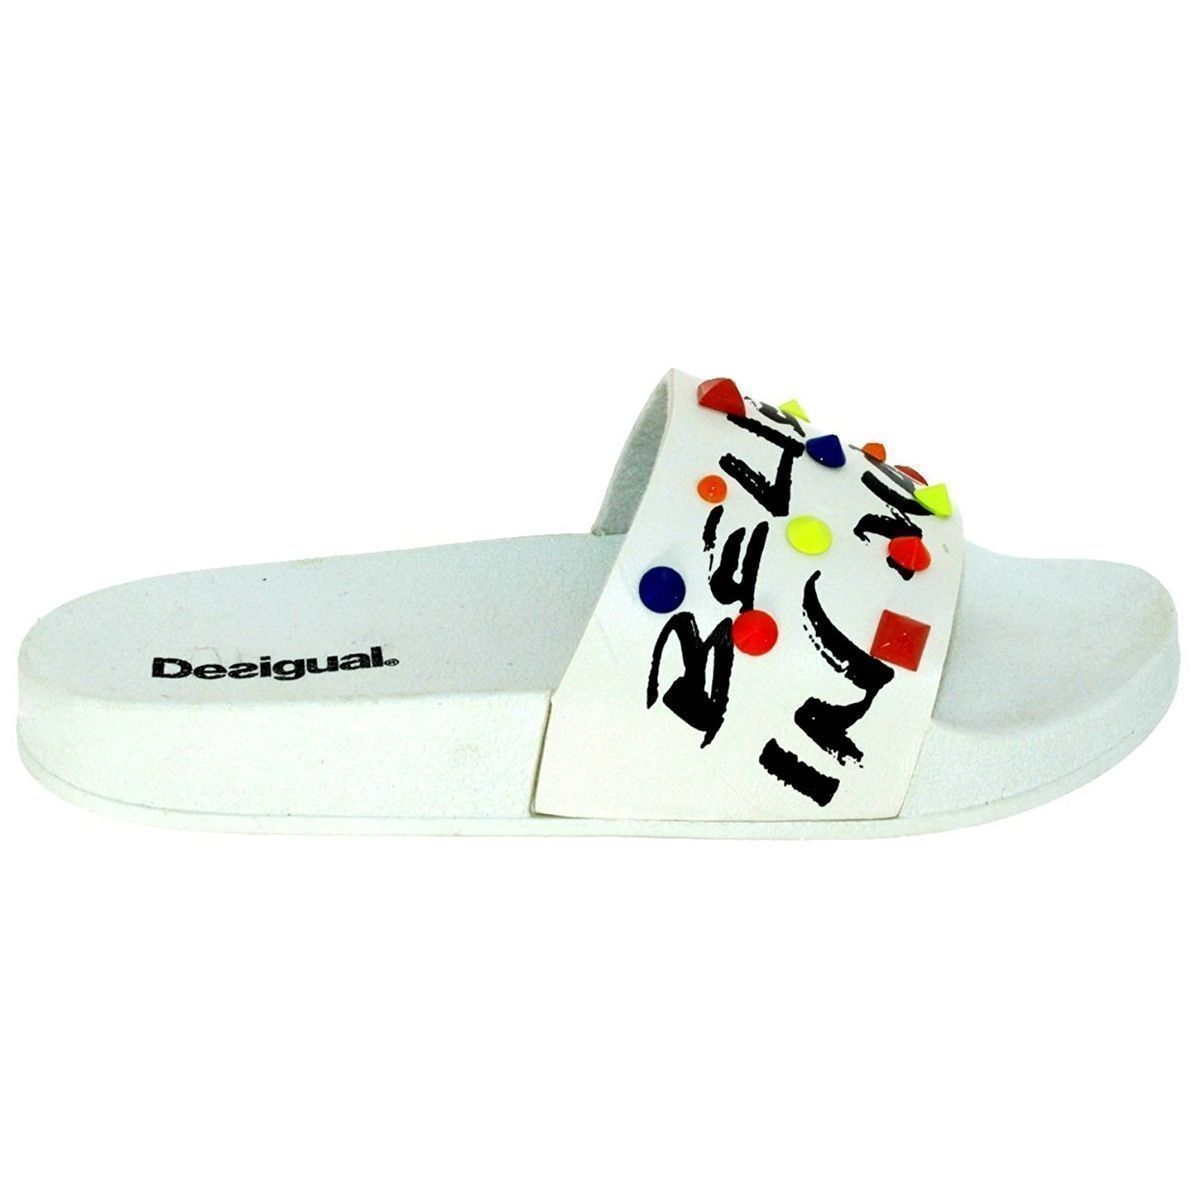 BUSAN SHOES_SLIDE CANDY:BLANC/SYNTHETIQUE/CAOUTCHOUC/CAOUTCHOUC/Blanc